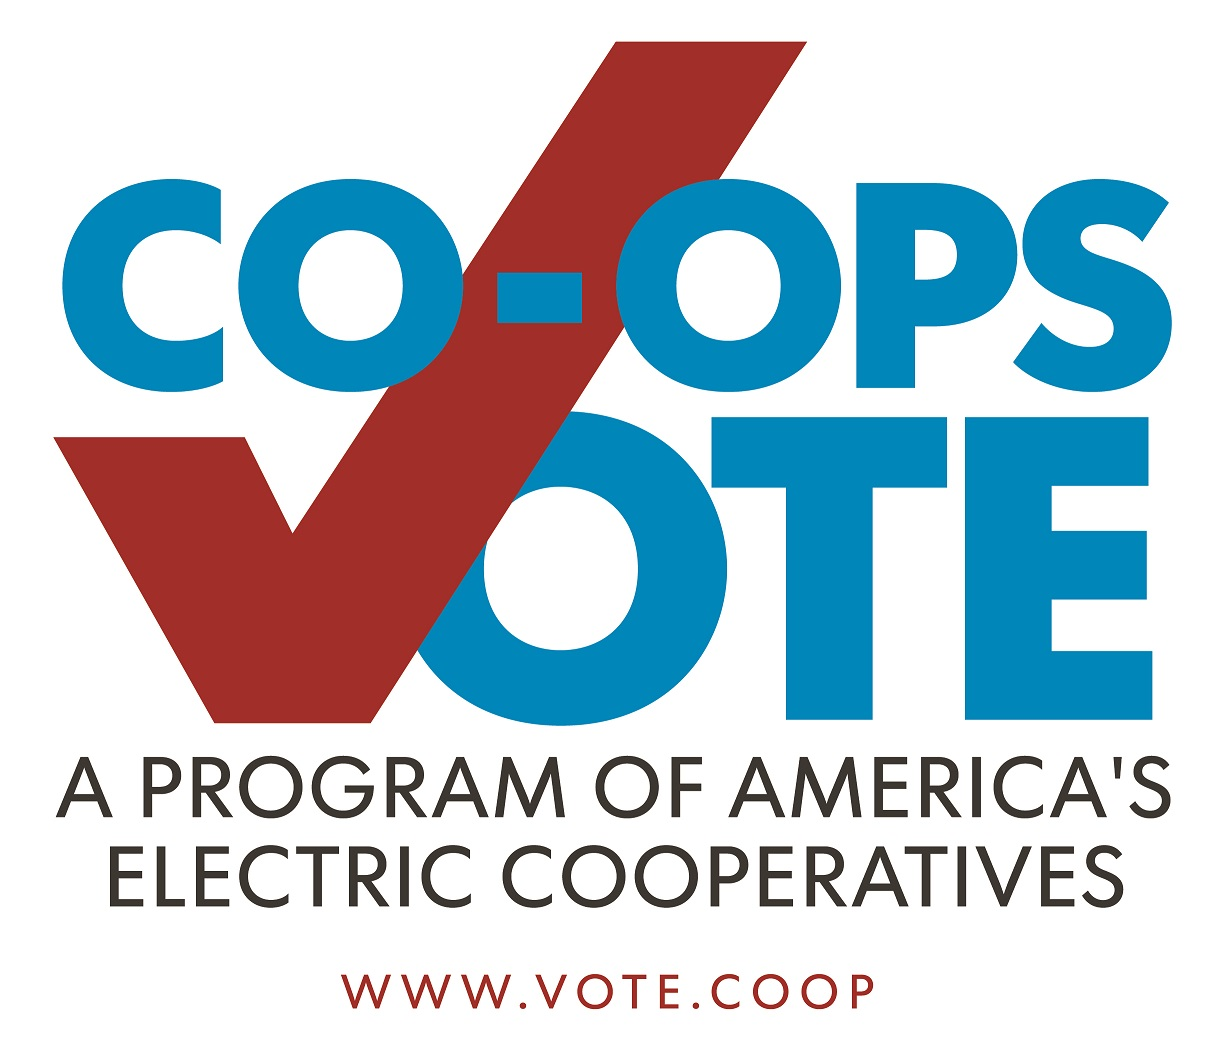 coops vote